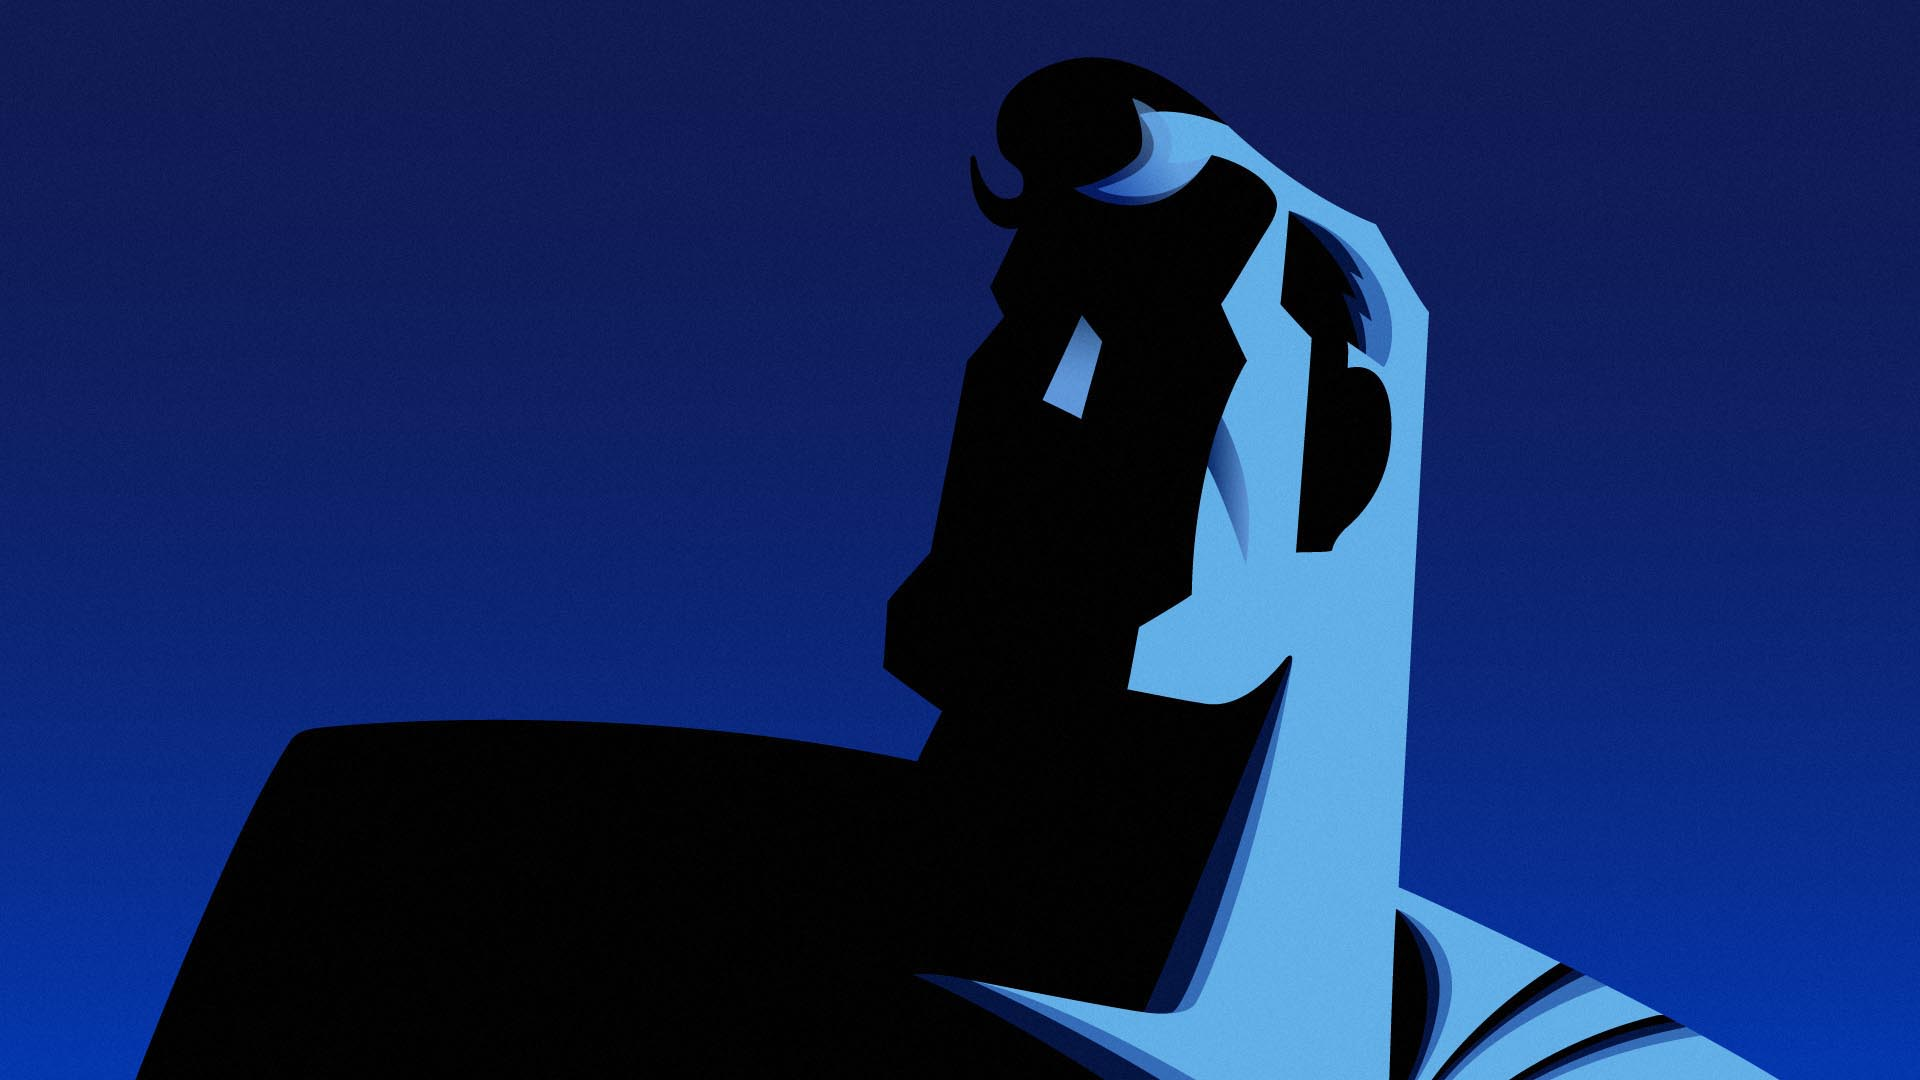 1920x1080 Superman Silhouette Hd Wallpaper Fullhdwpp